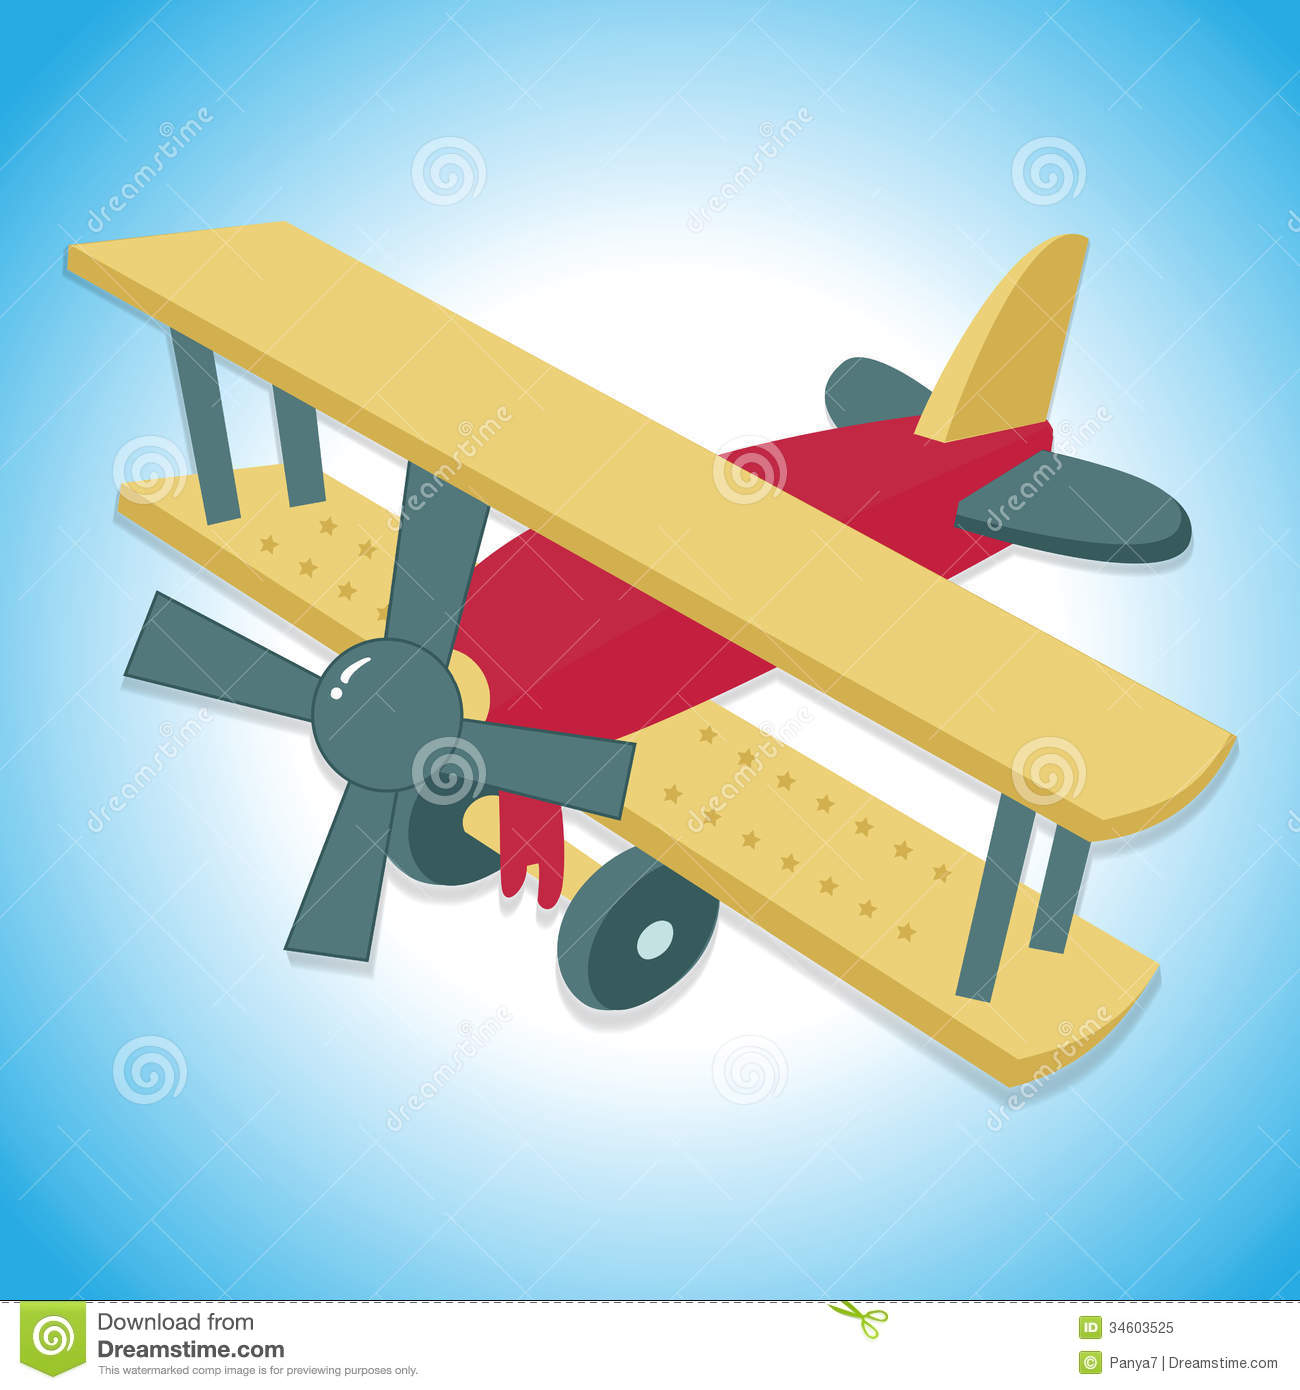 Airplane background royalty free. Blue vintage plane clipart